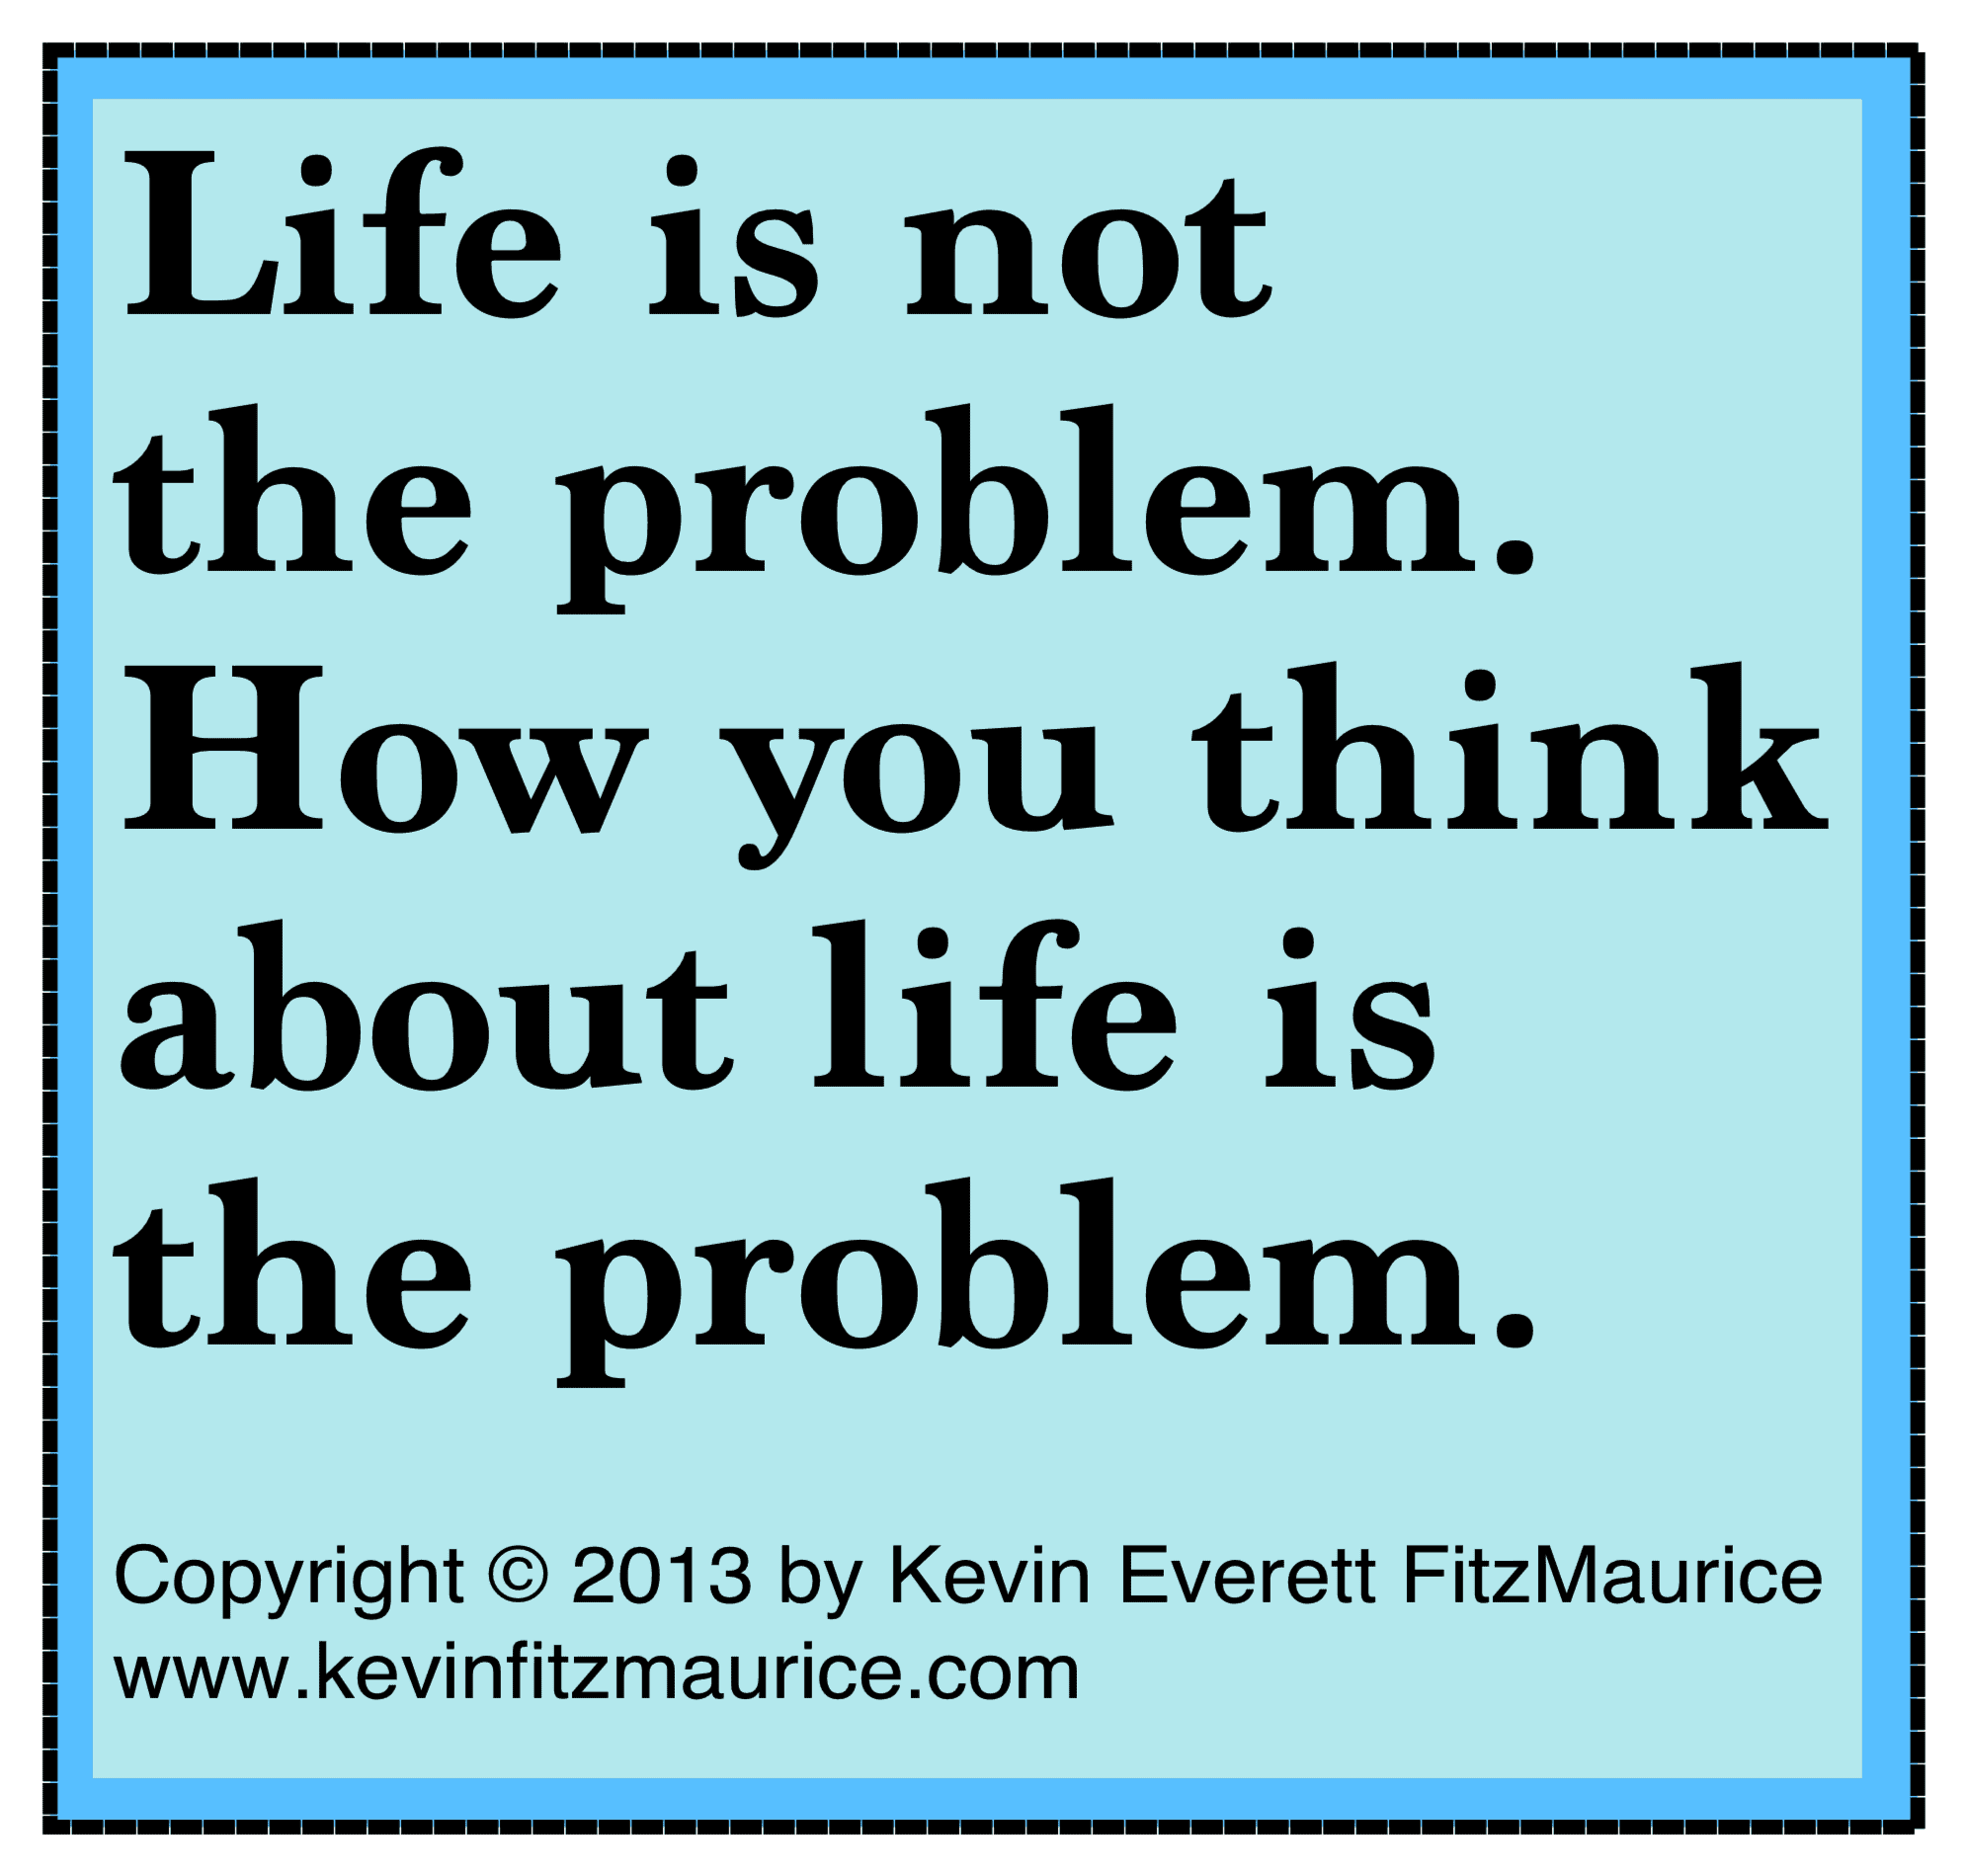 life is not the problem